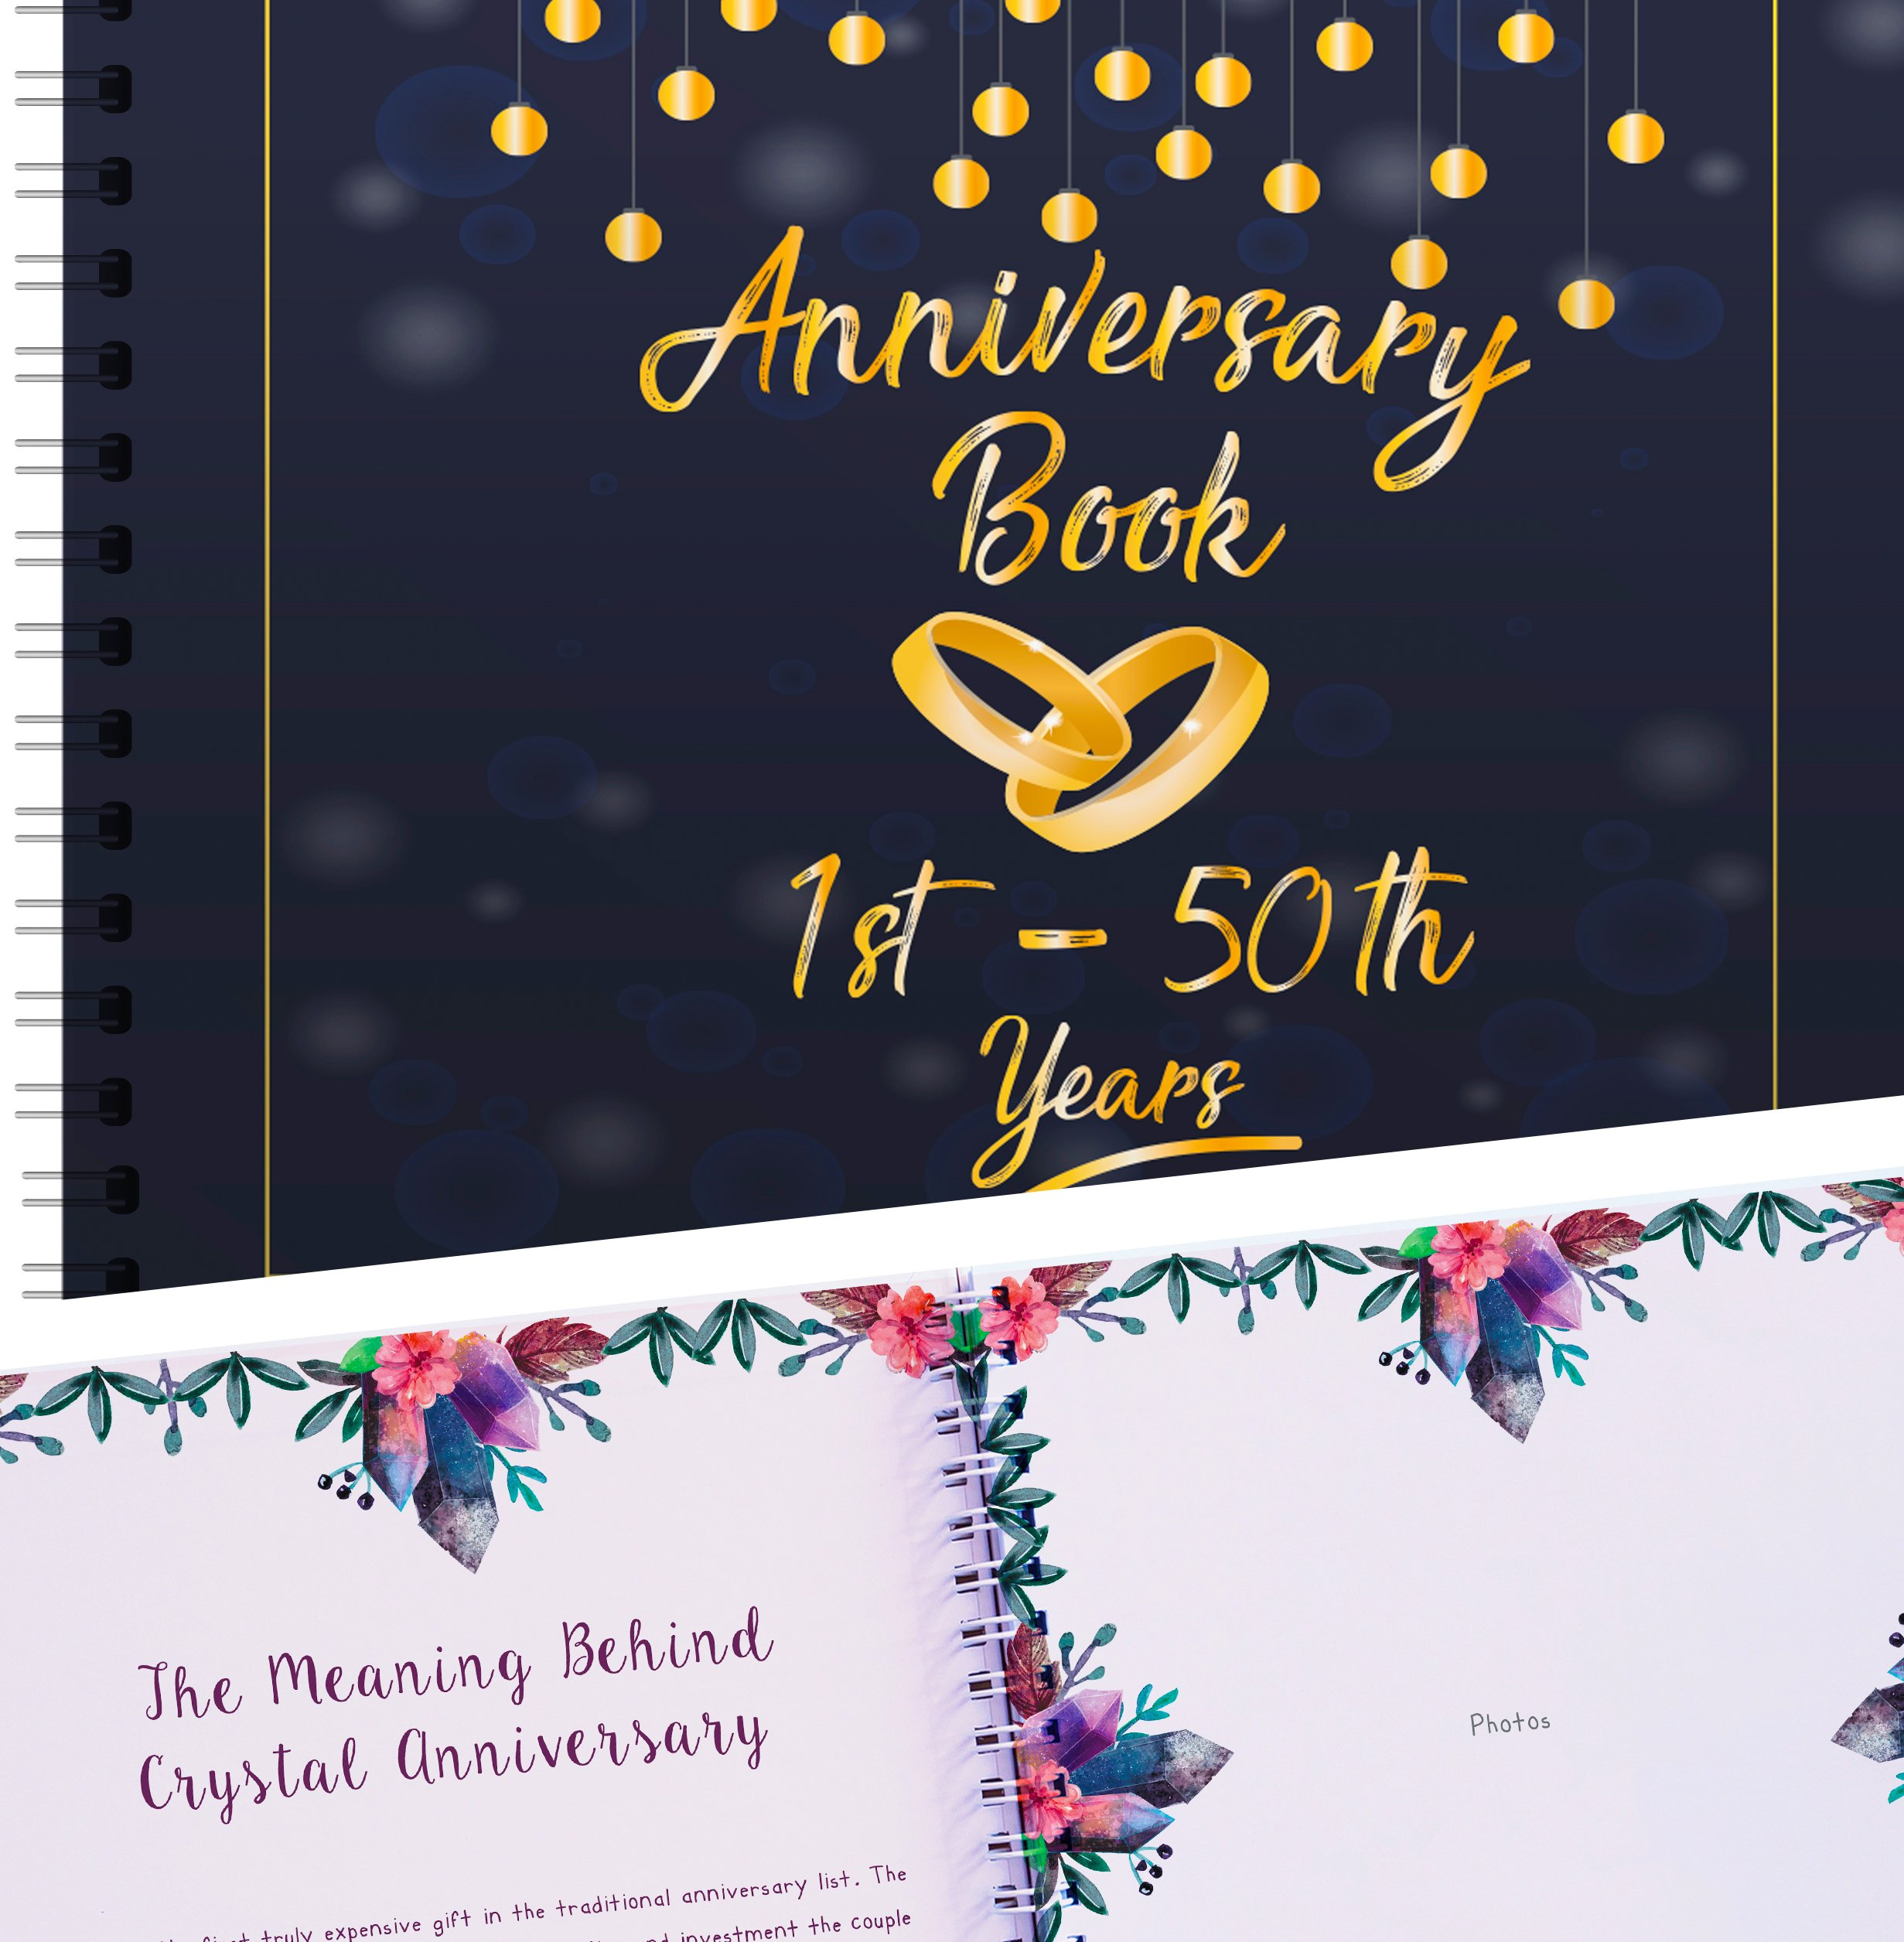 Wedding Anniversary Memory Book - A Hardcover Journal To Document Anniversaries From The 1st To the 50th Year - Unique Couple Gifts For Him & Her - Personalized Marriage Presents For Husband & Wife. by Unconditional Rosie